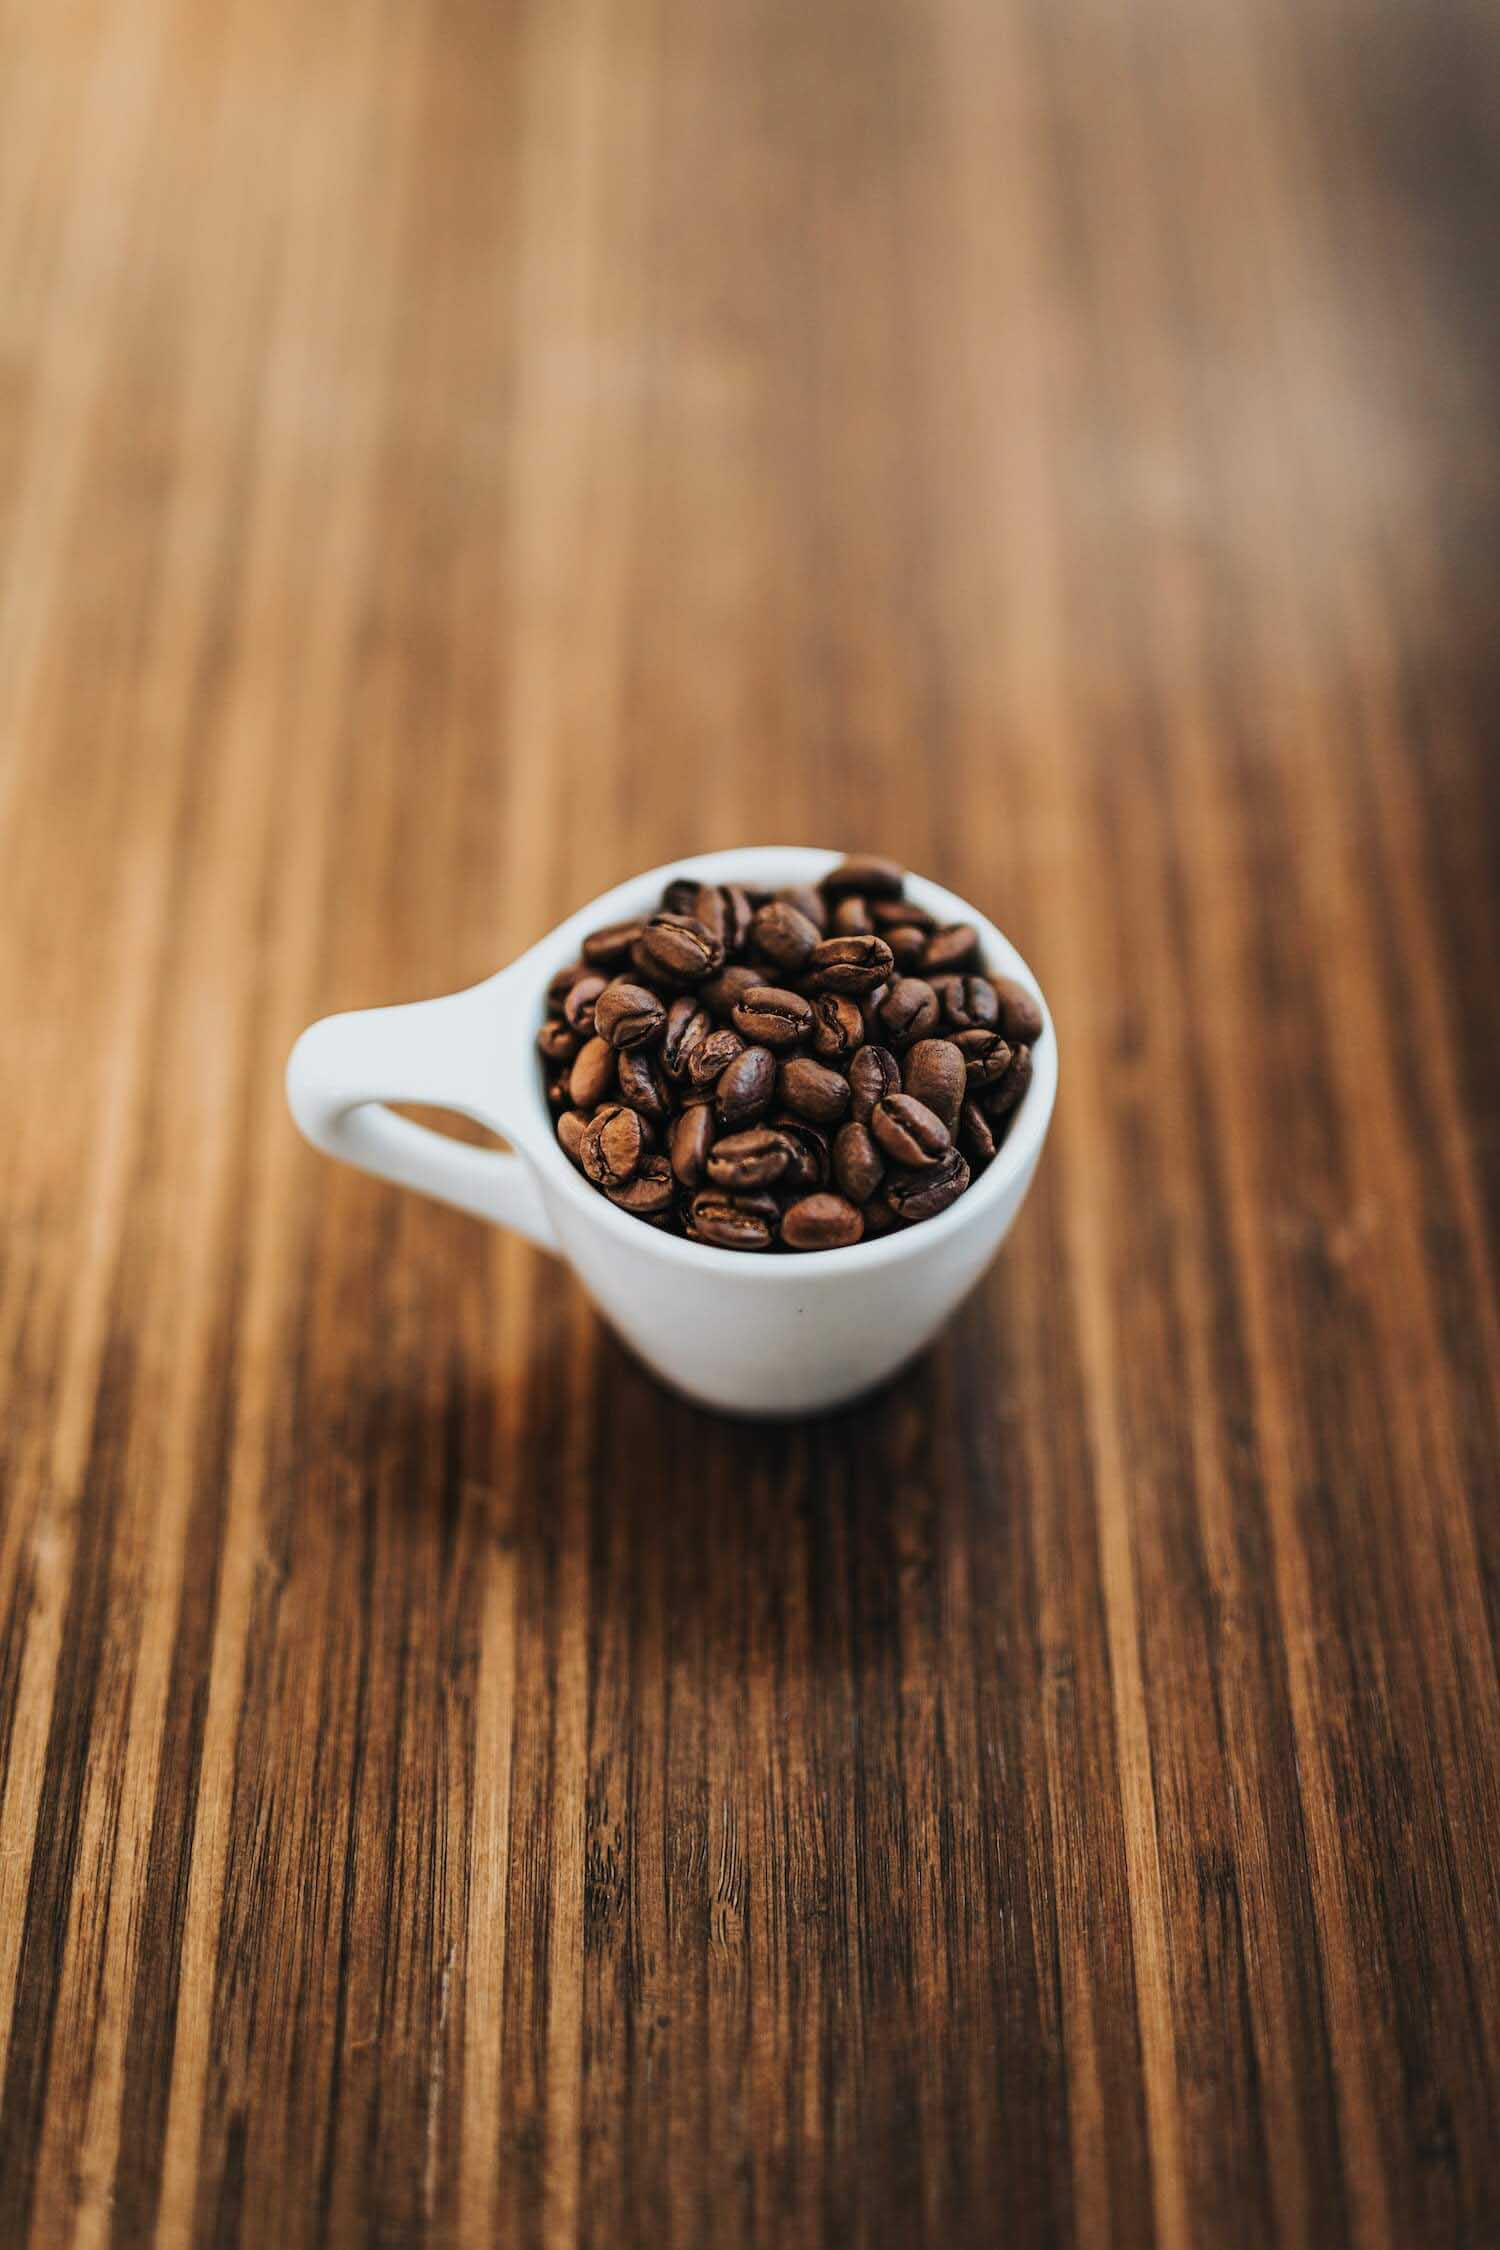 TCE-COFFEE-IMAGES-908